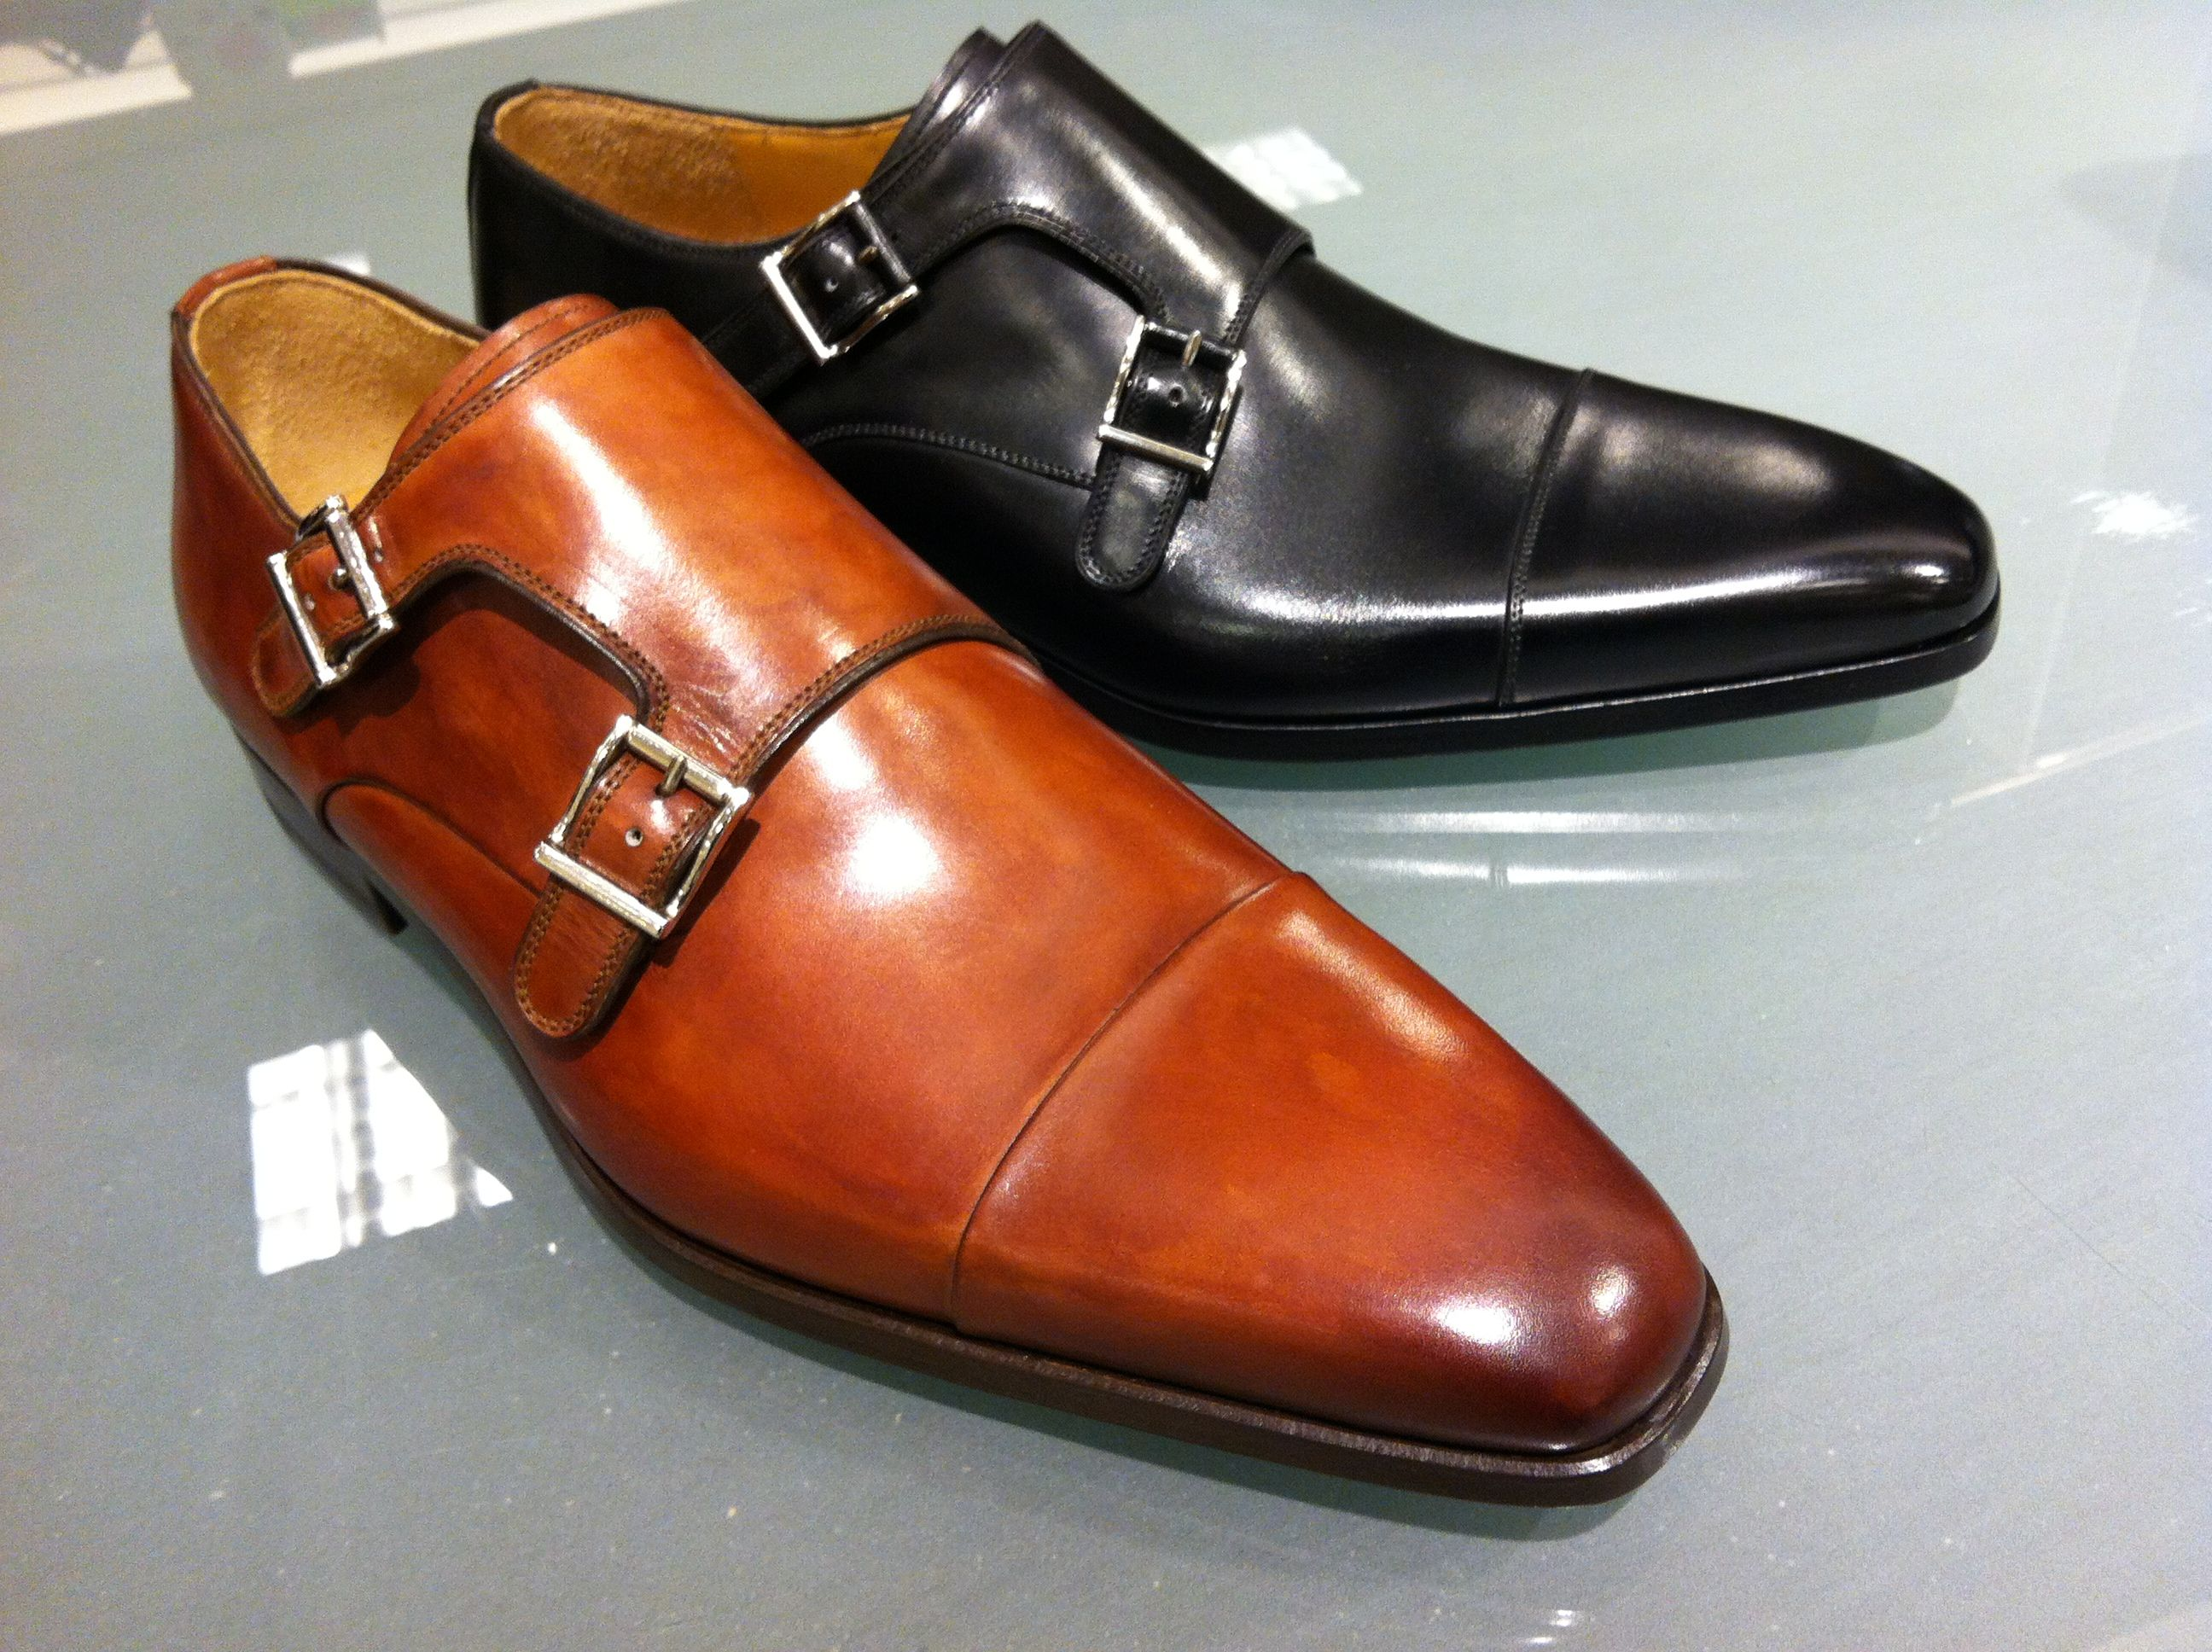 Magnanni Monk Strap at Nordstrom Men's Shoes in Paramus ...